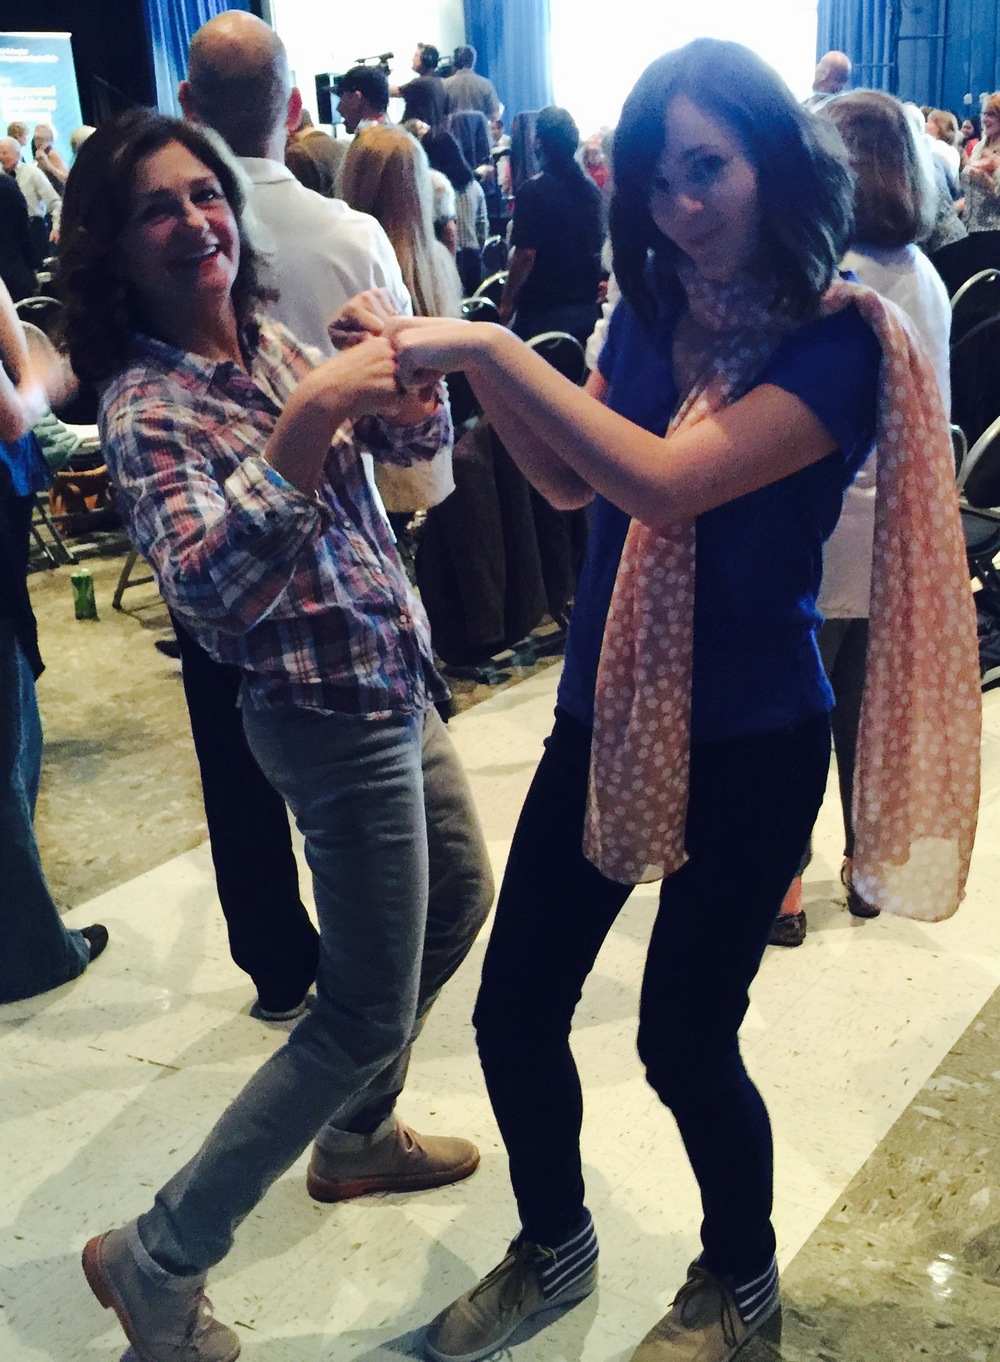 Dancing with Jill while Studying Neuroscience of Play, Creativity and Mindfulness with Daniel Siegel in LA, CA in March